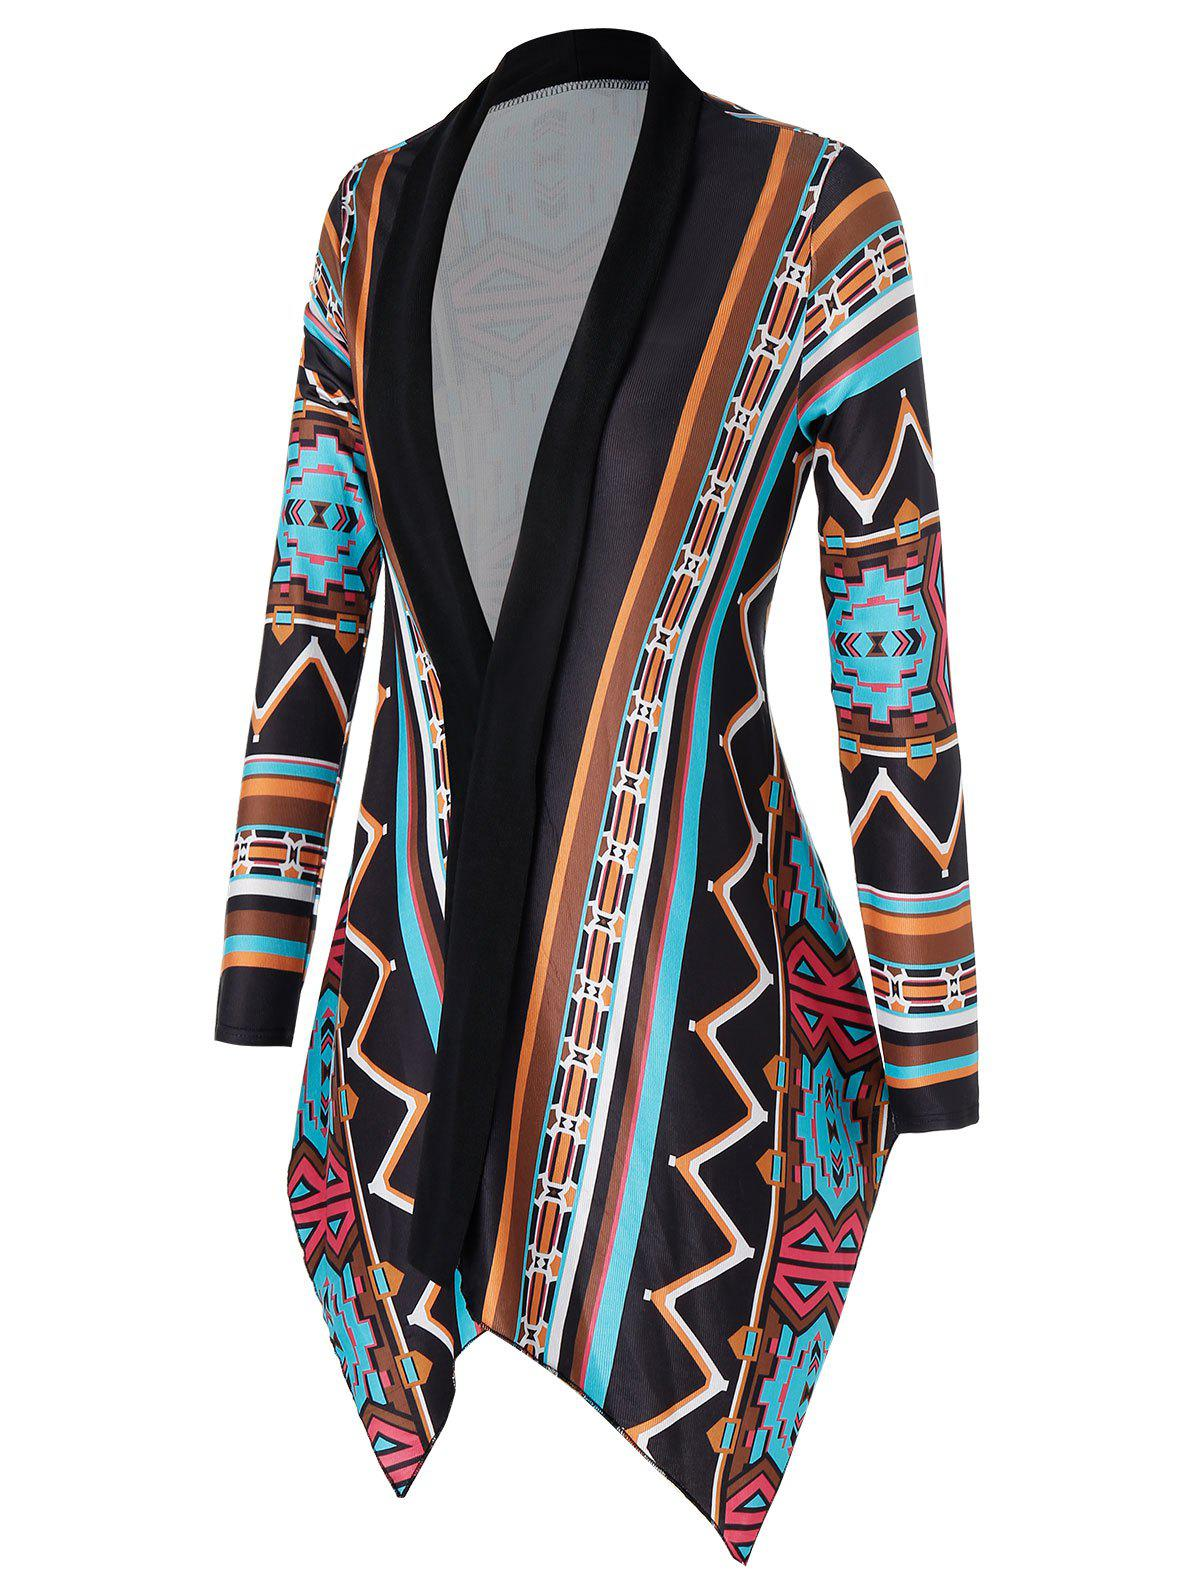 Plus Size Asymmetric Geometry Cardigan - multicolor A L